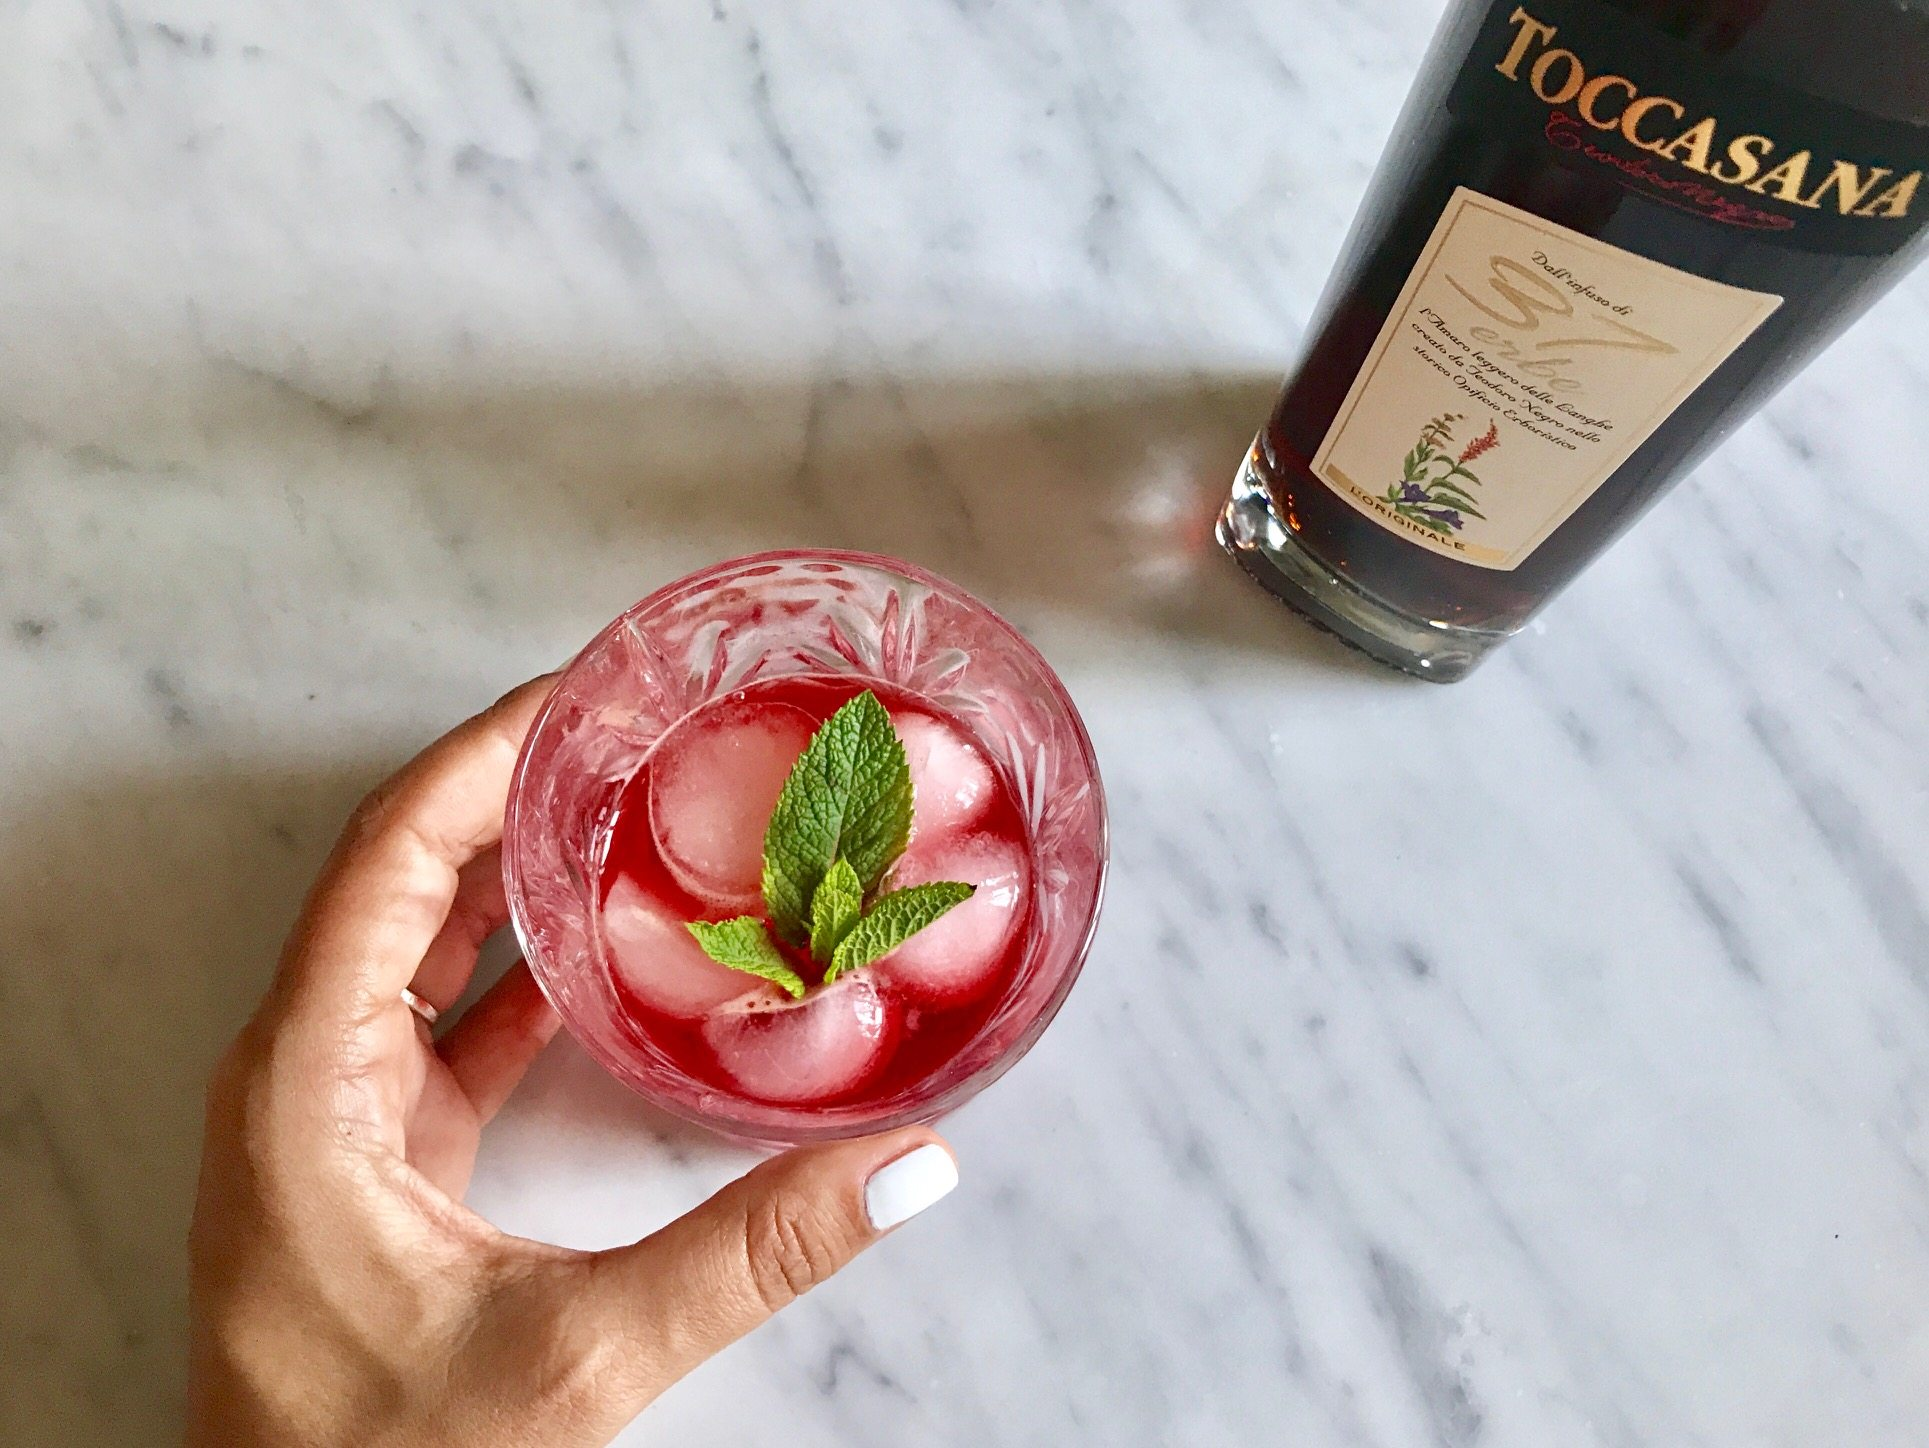 amaro toccasana cocktail